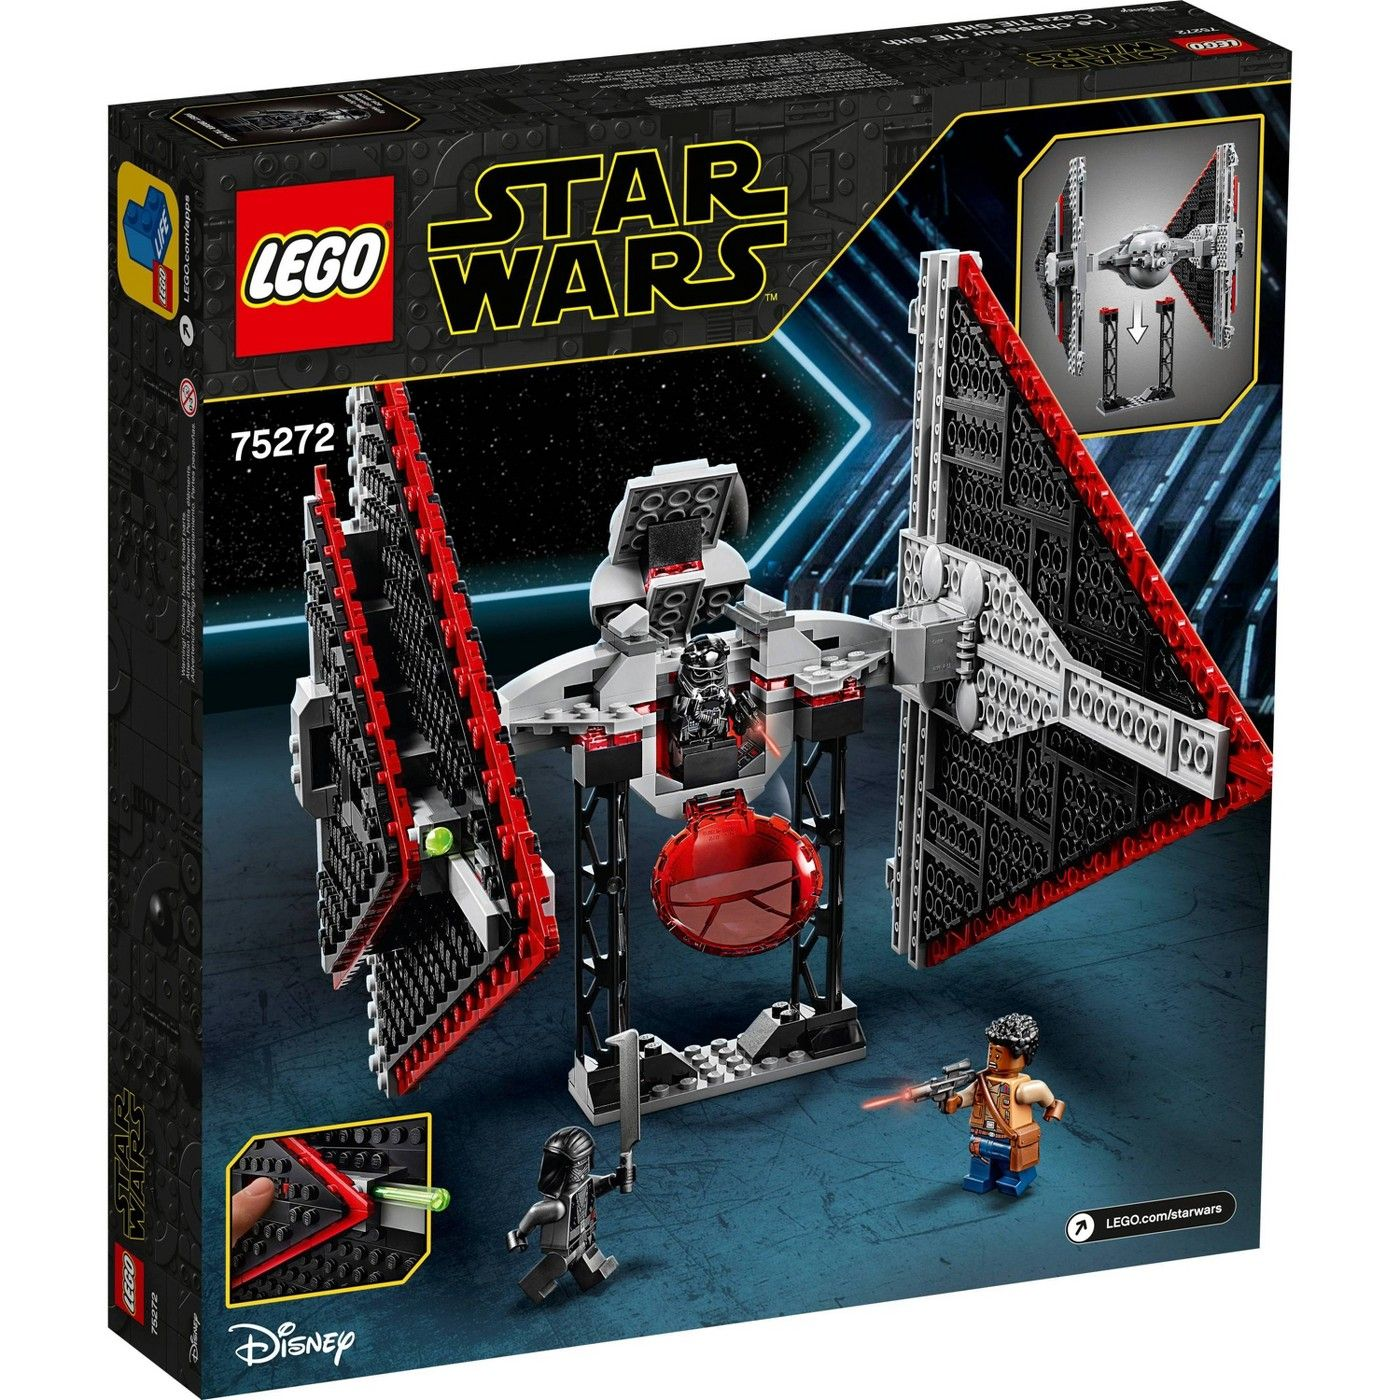 Lego Star Wars Sith Tie Fighter 75272 Collectible Building Kit Affiliate Sith Ad Tie Wars In 2020 Lego Star Wars Star Wars Sith Lego Star